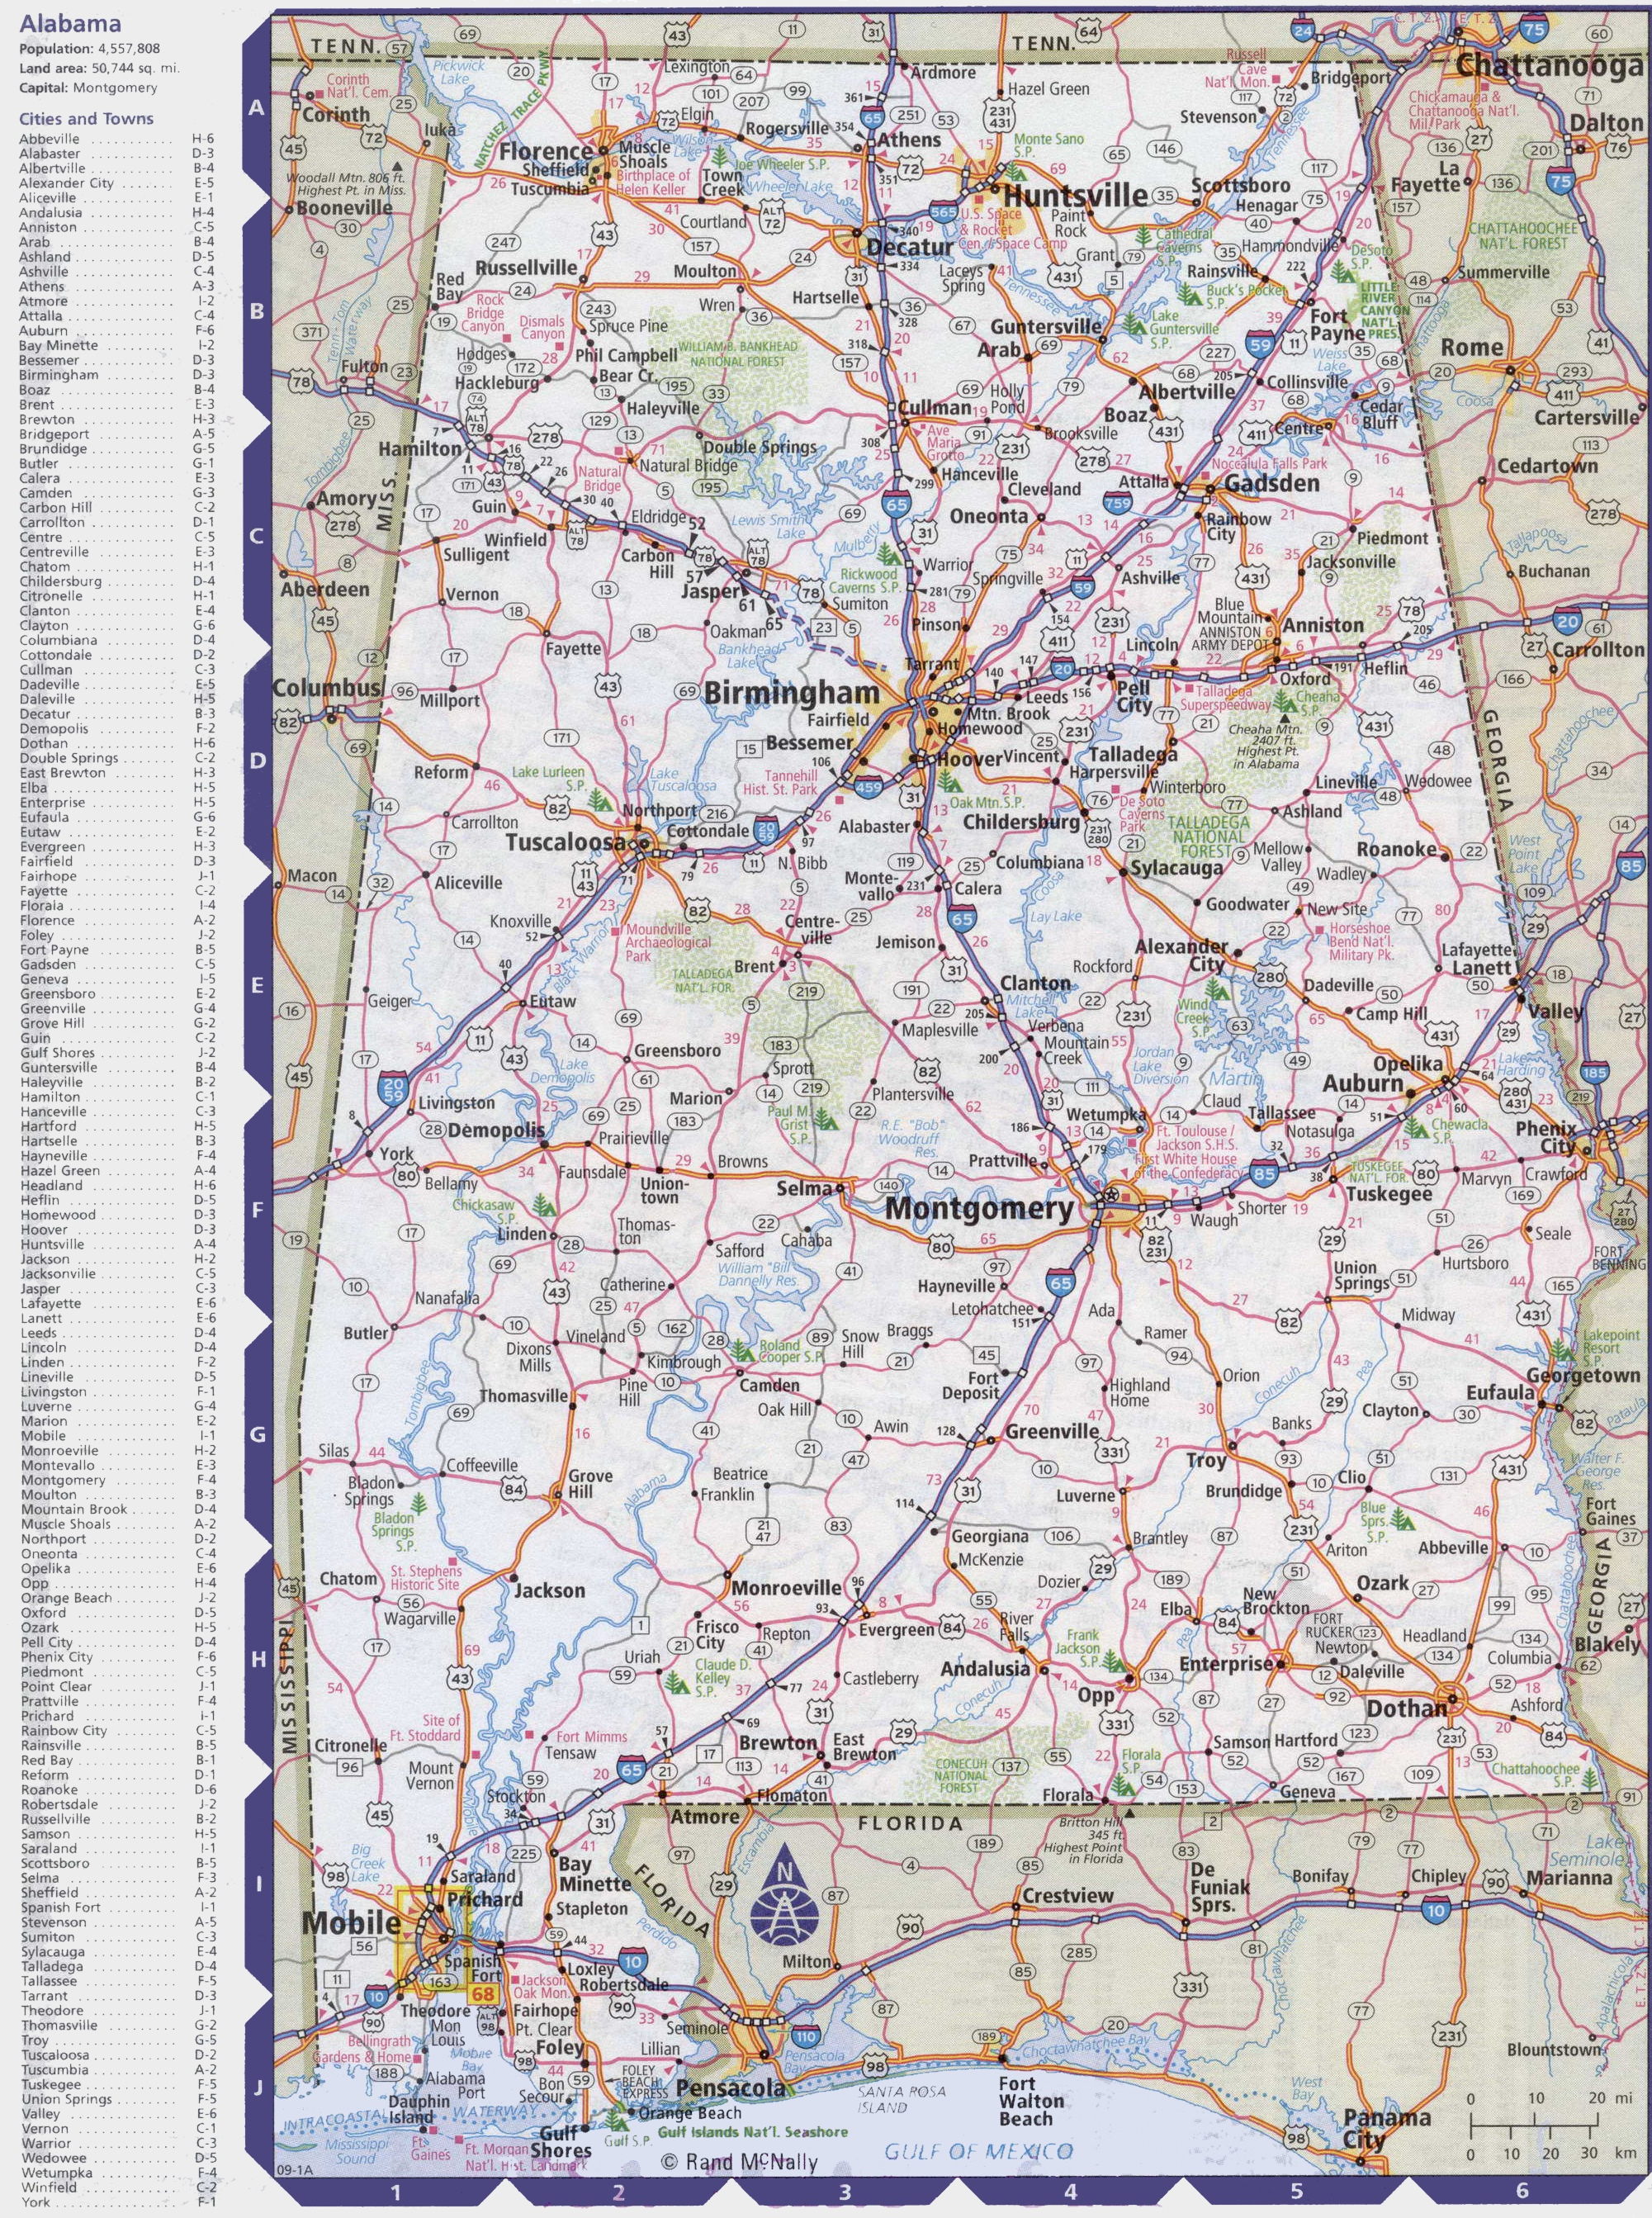 Map Of Alabama With Cities And Towns - Alabama in usa map